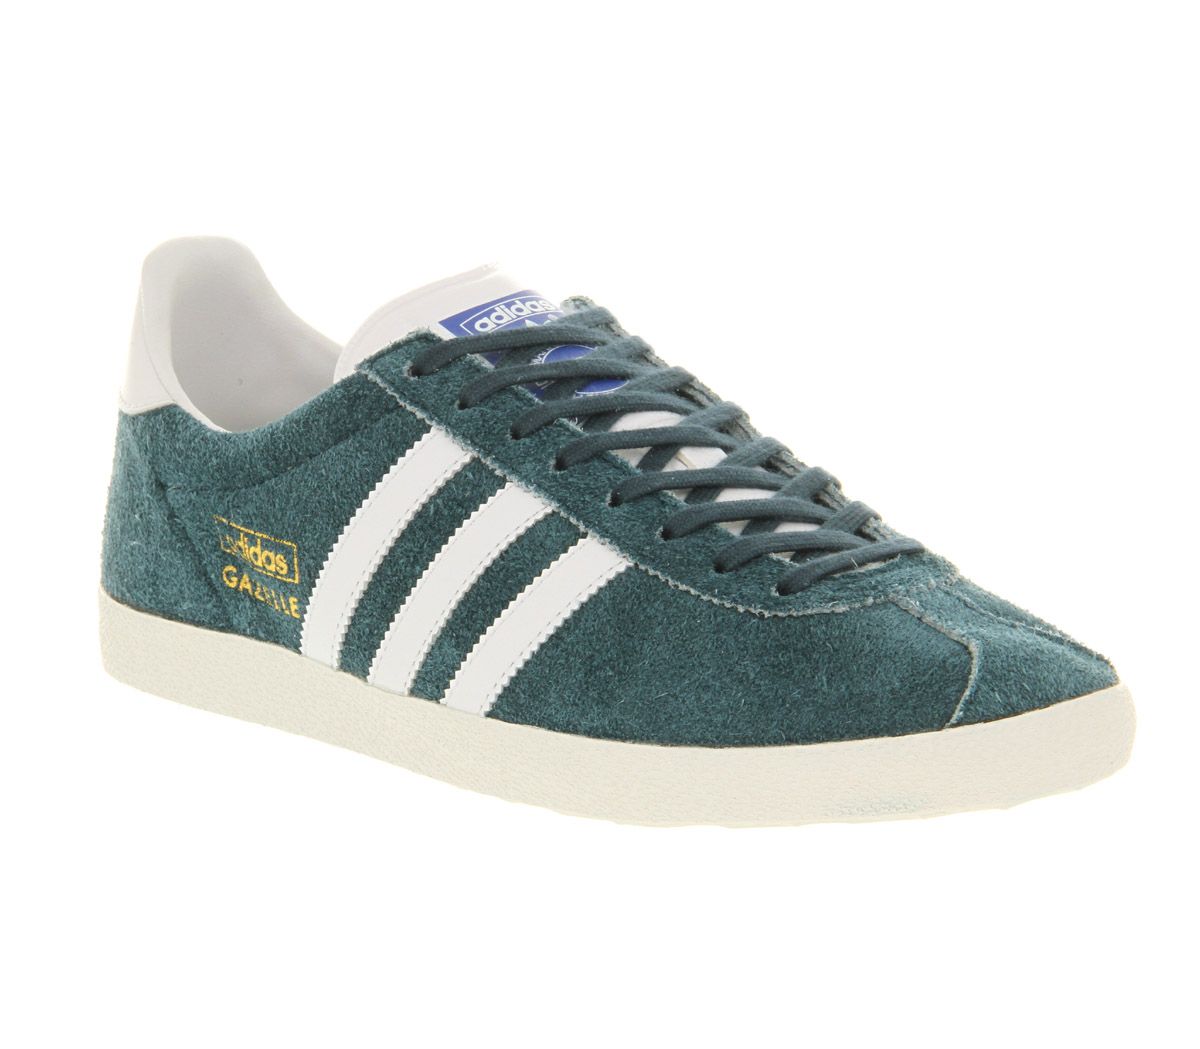 3229e685b82a adidas Gazelle Og Dark Petrol Running White Met Gold in Blue for Men ...